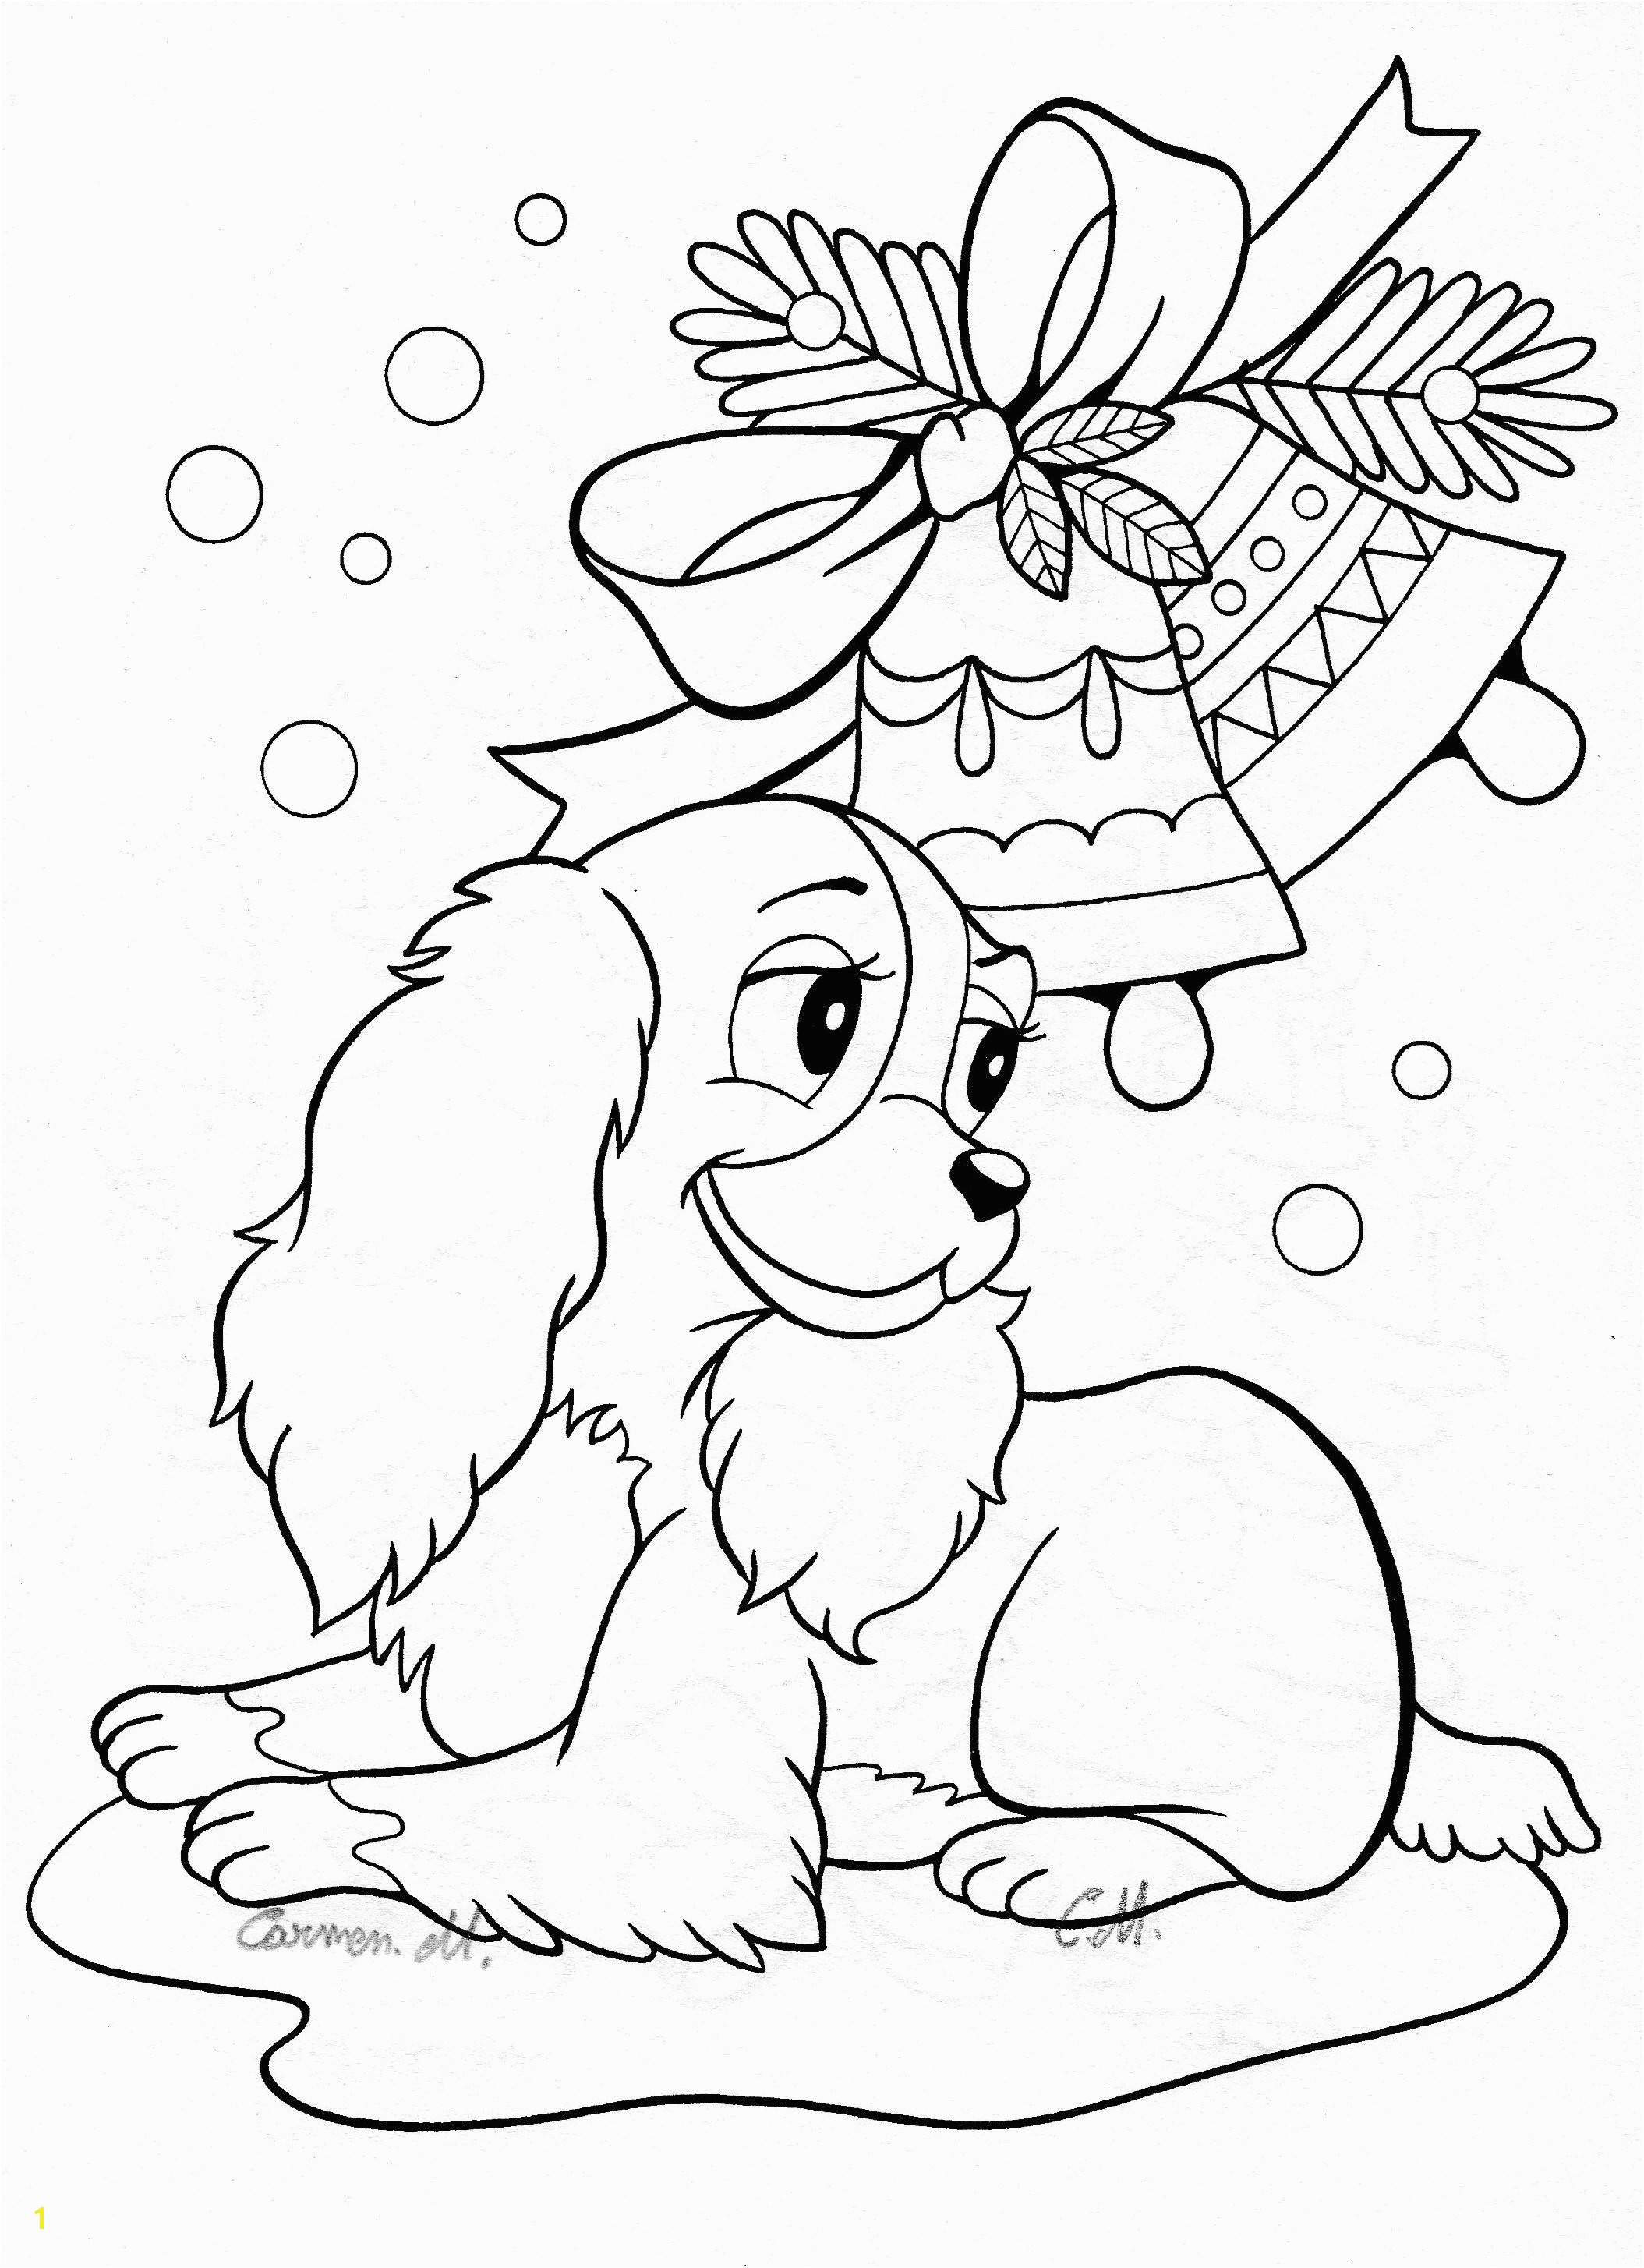 Cute Puppy Incredible Cute Puppy Coloring Pages Lovely Printable Od Dog Coloring Pages 2109